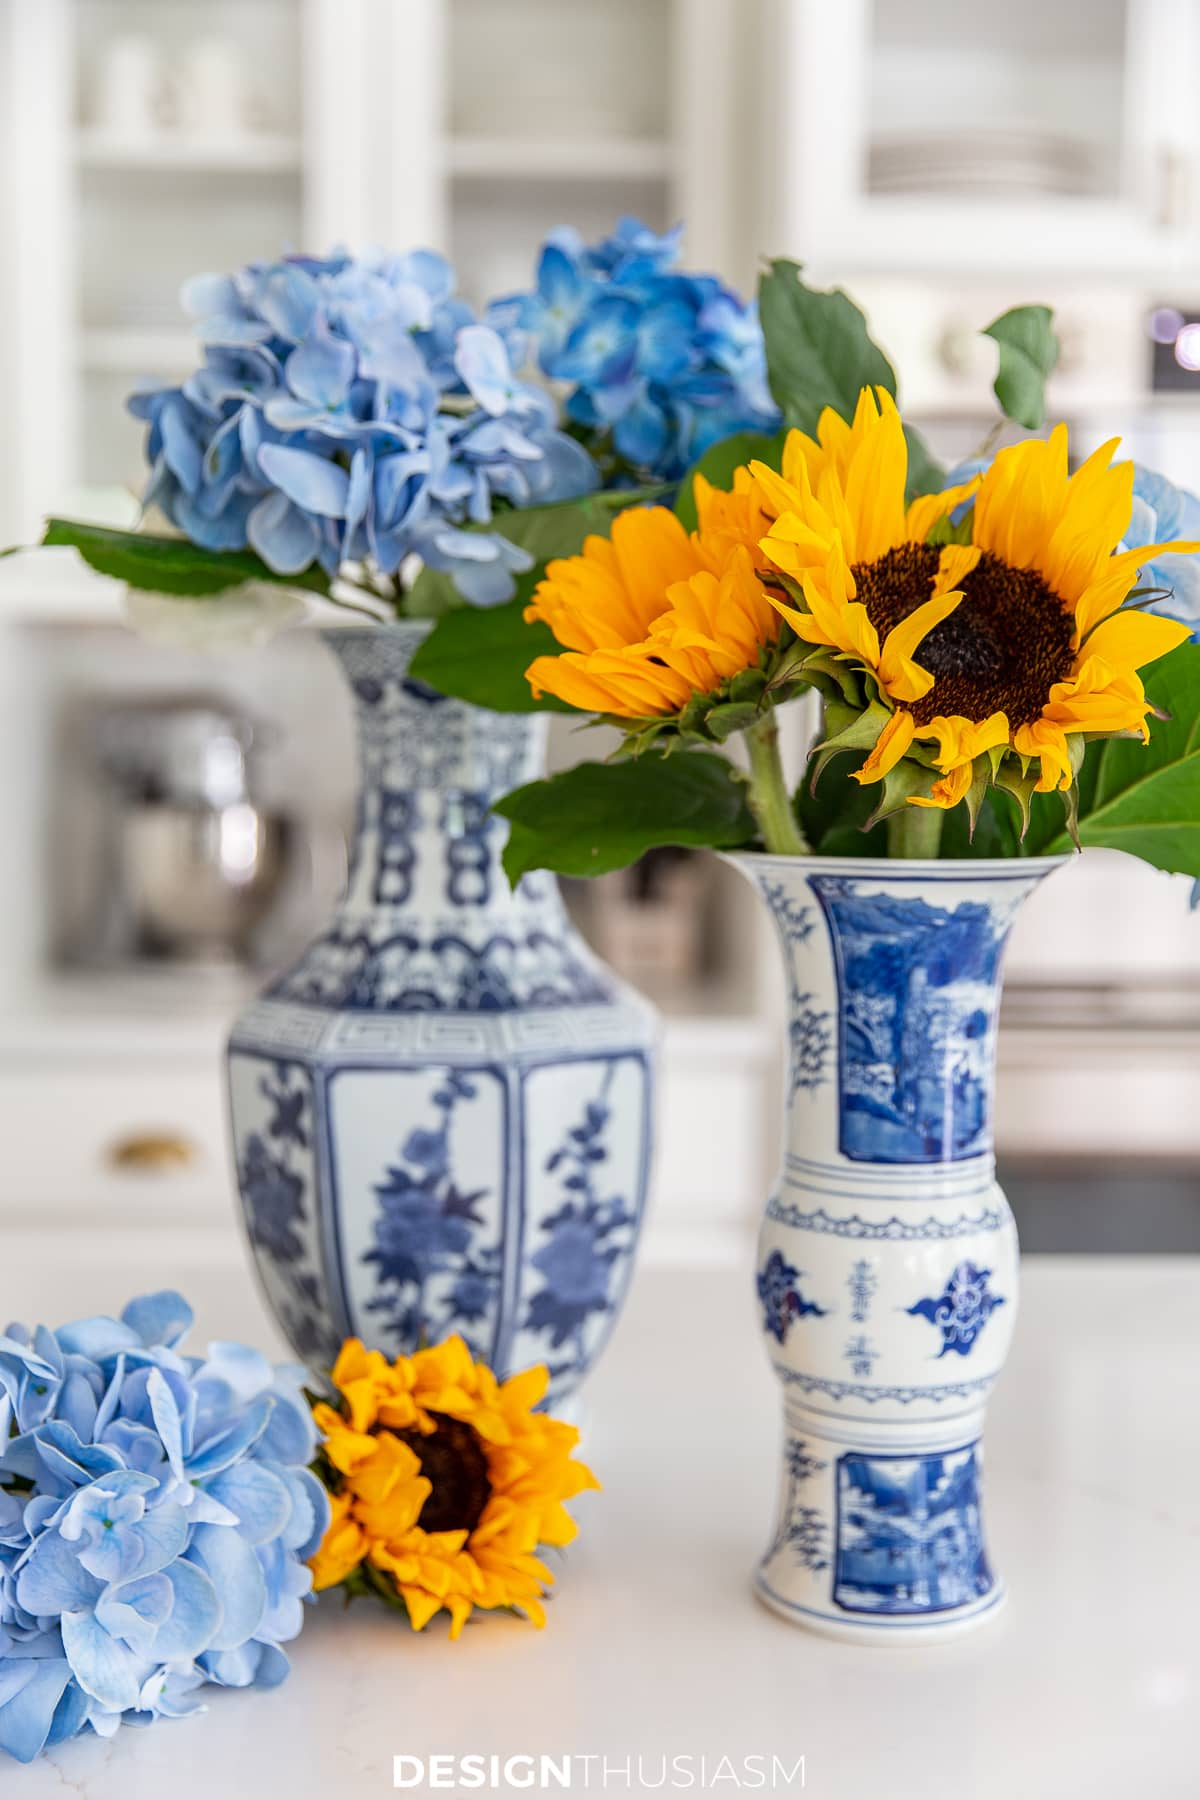 Kitchen Decor: 5 Sunny Kitchen Styling Ideas for a Cheerful Summer